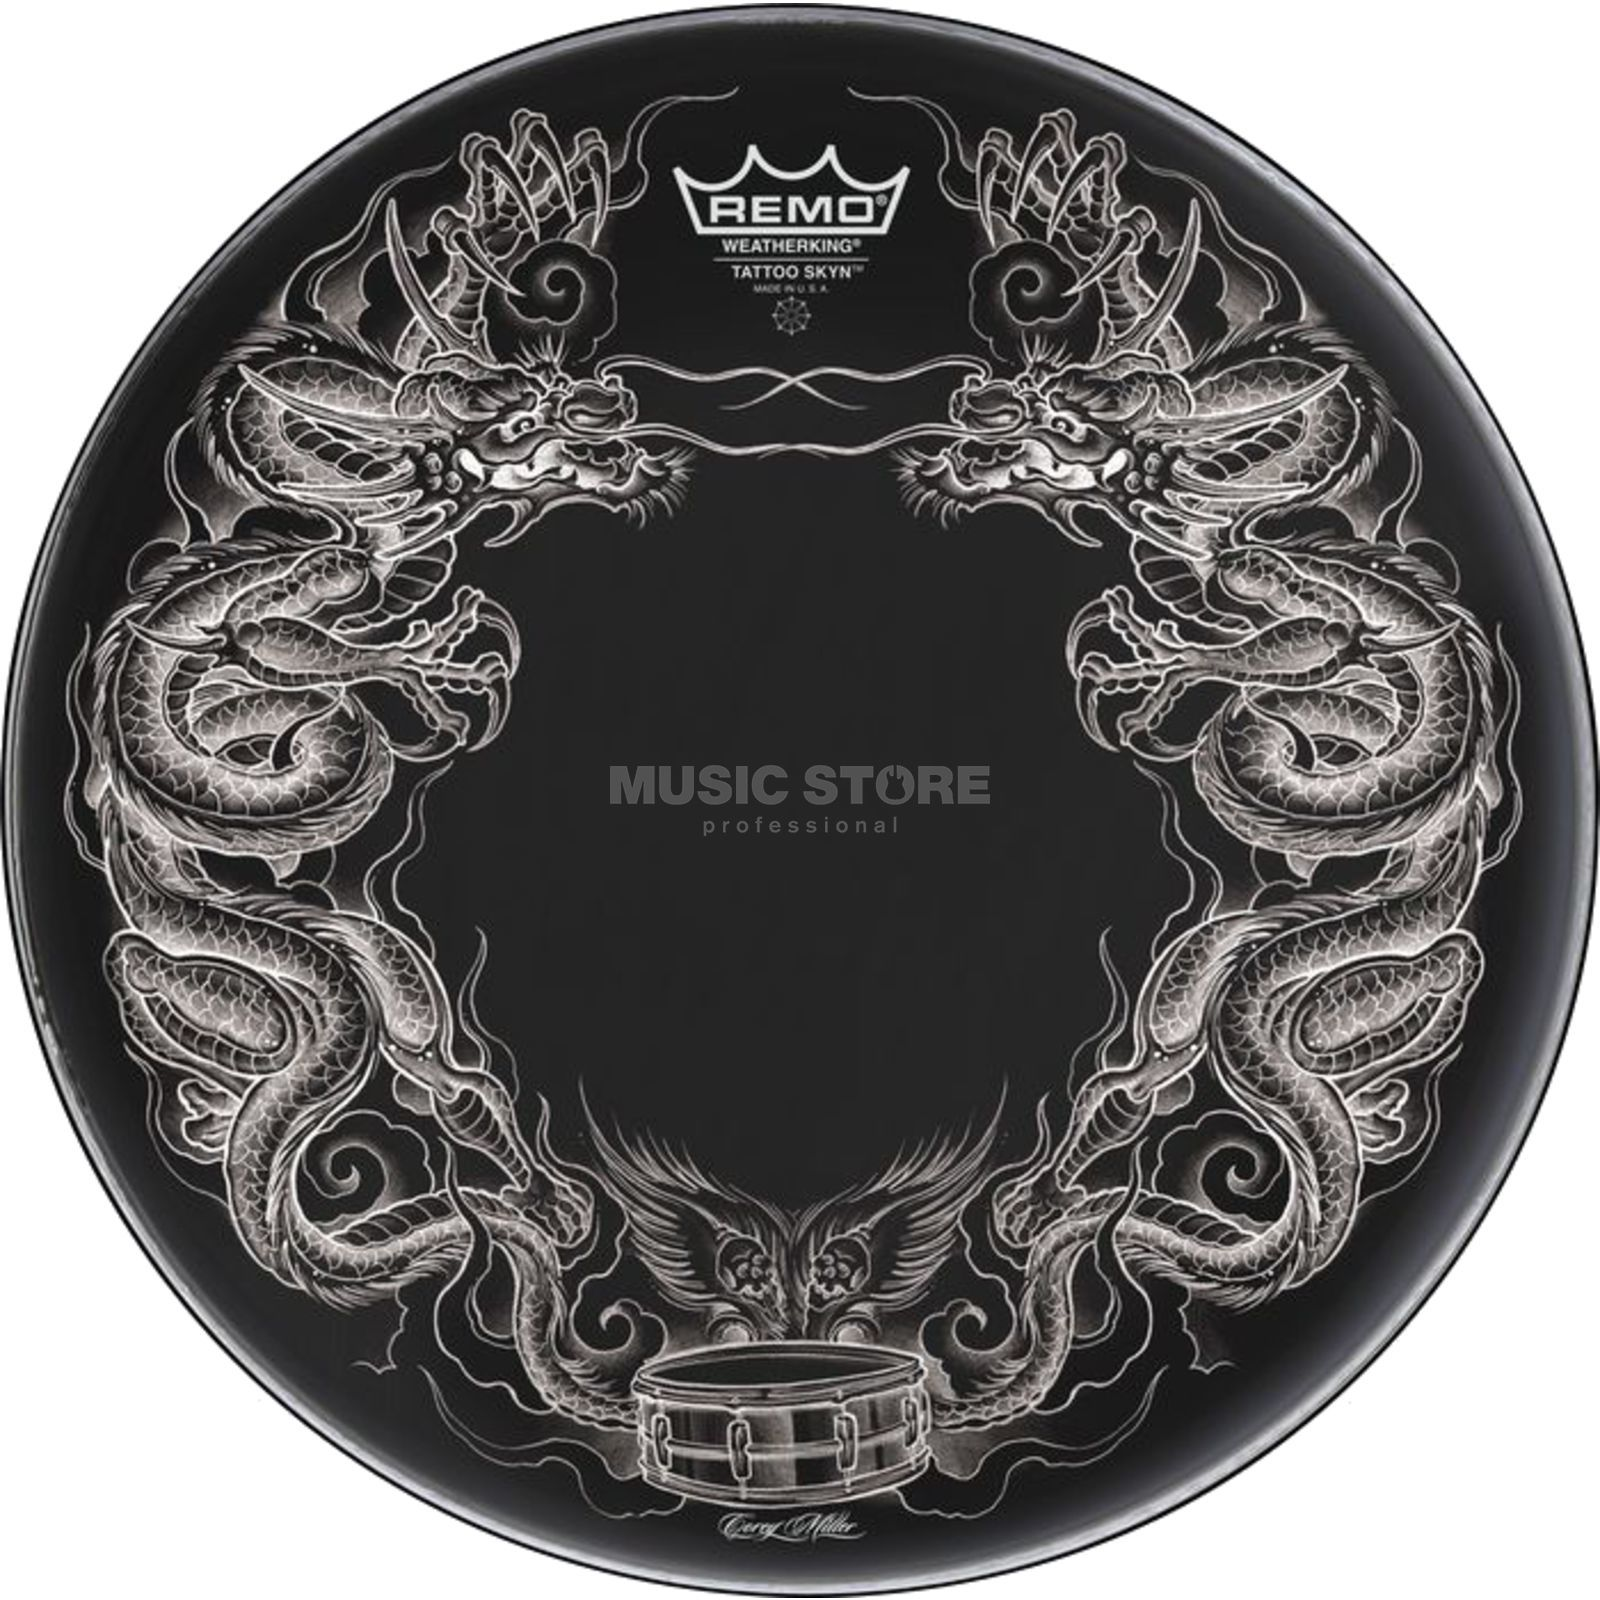 "Remo Tattoo Skyn 22"", Dragon Skyn on black Immagine prodotto"